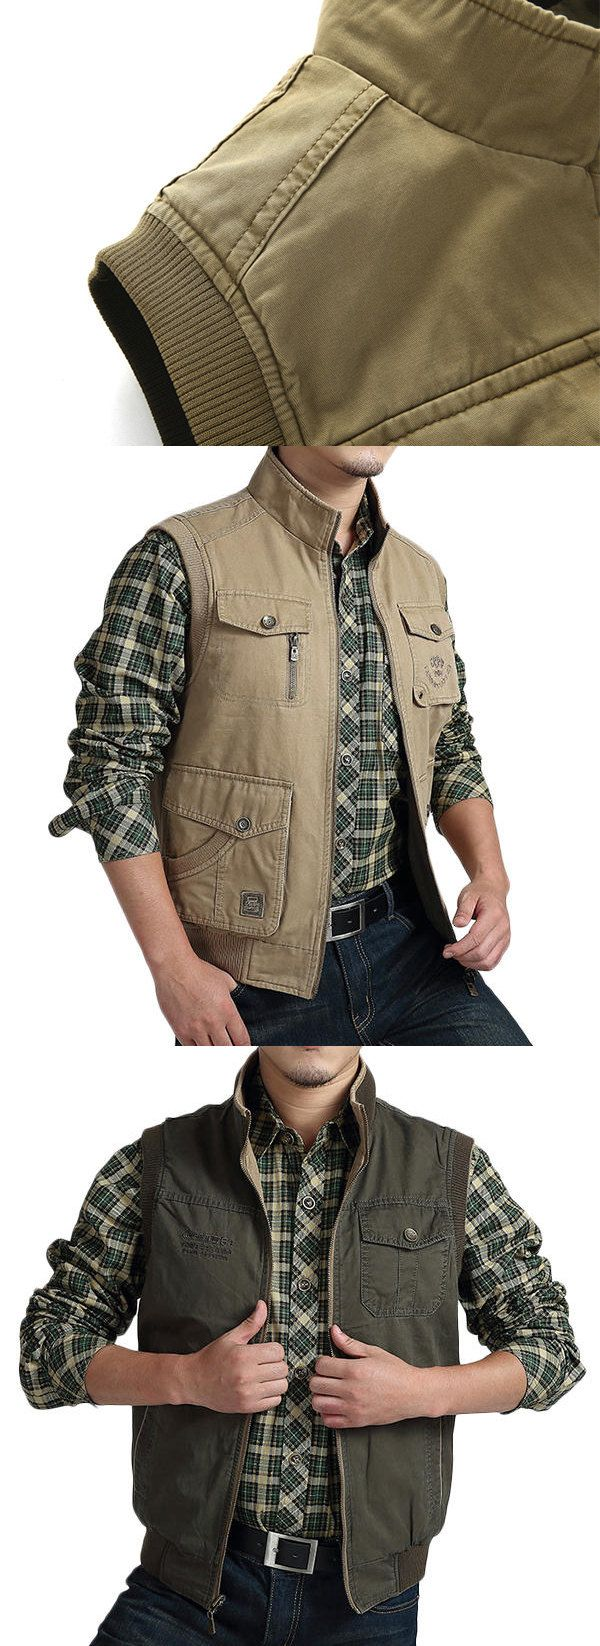 Old School Outdoor Vest for you. 2 Colors Optional, Best Gift For Him.